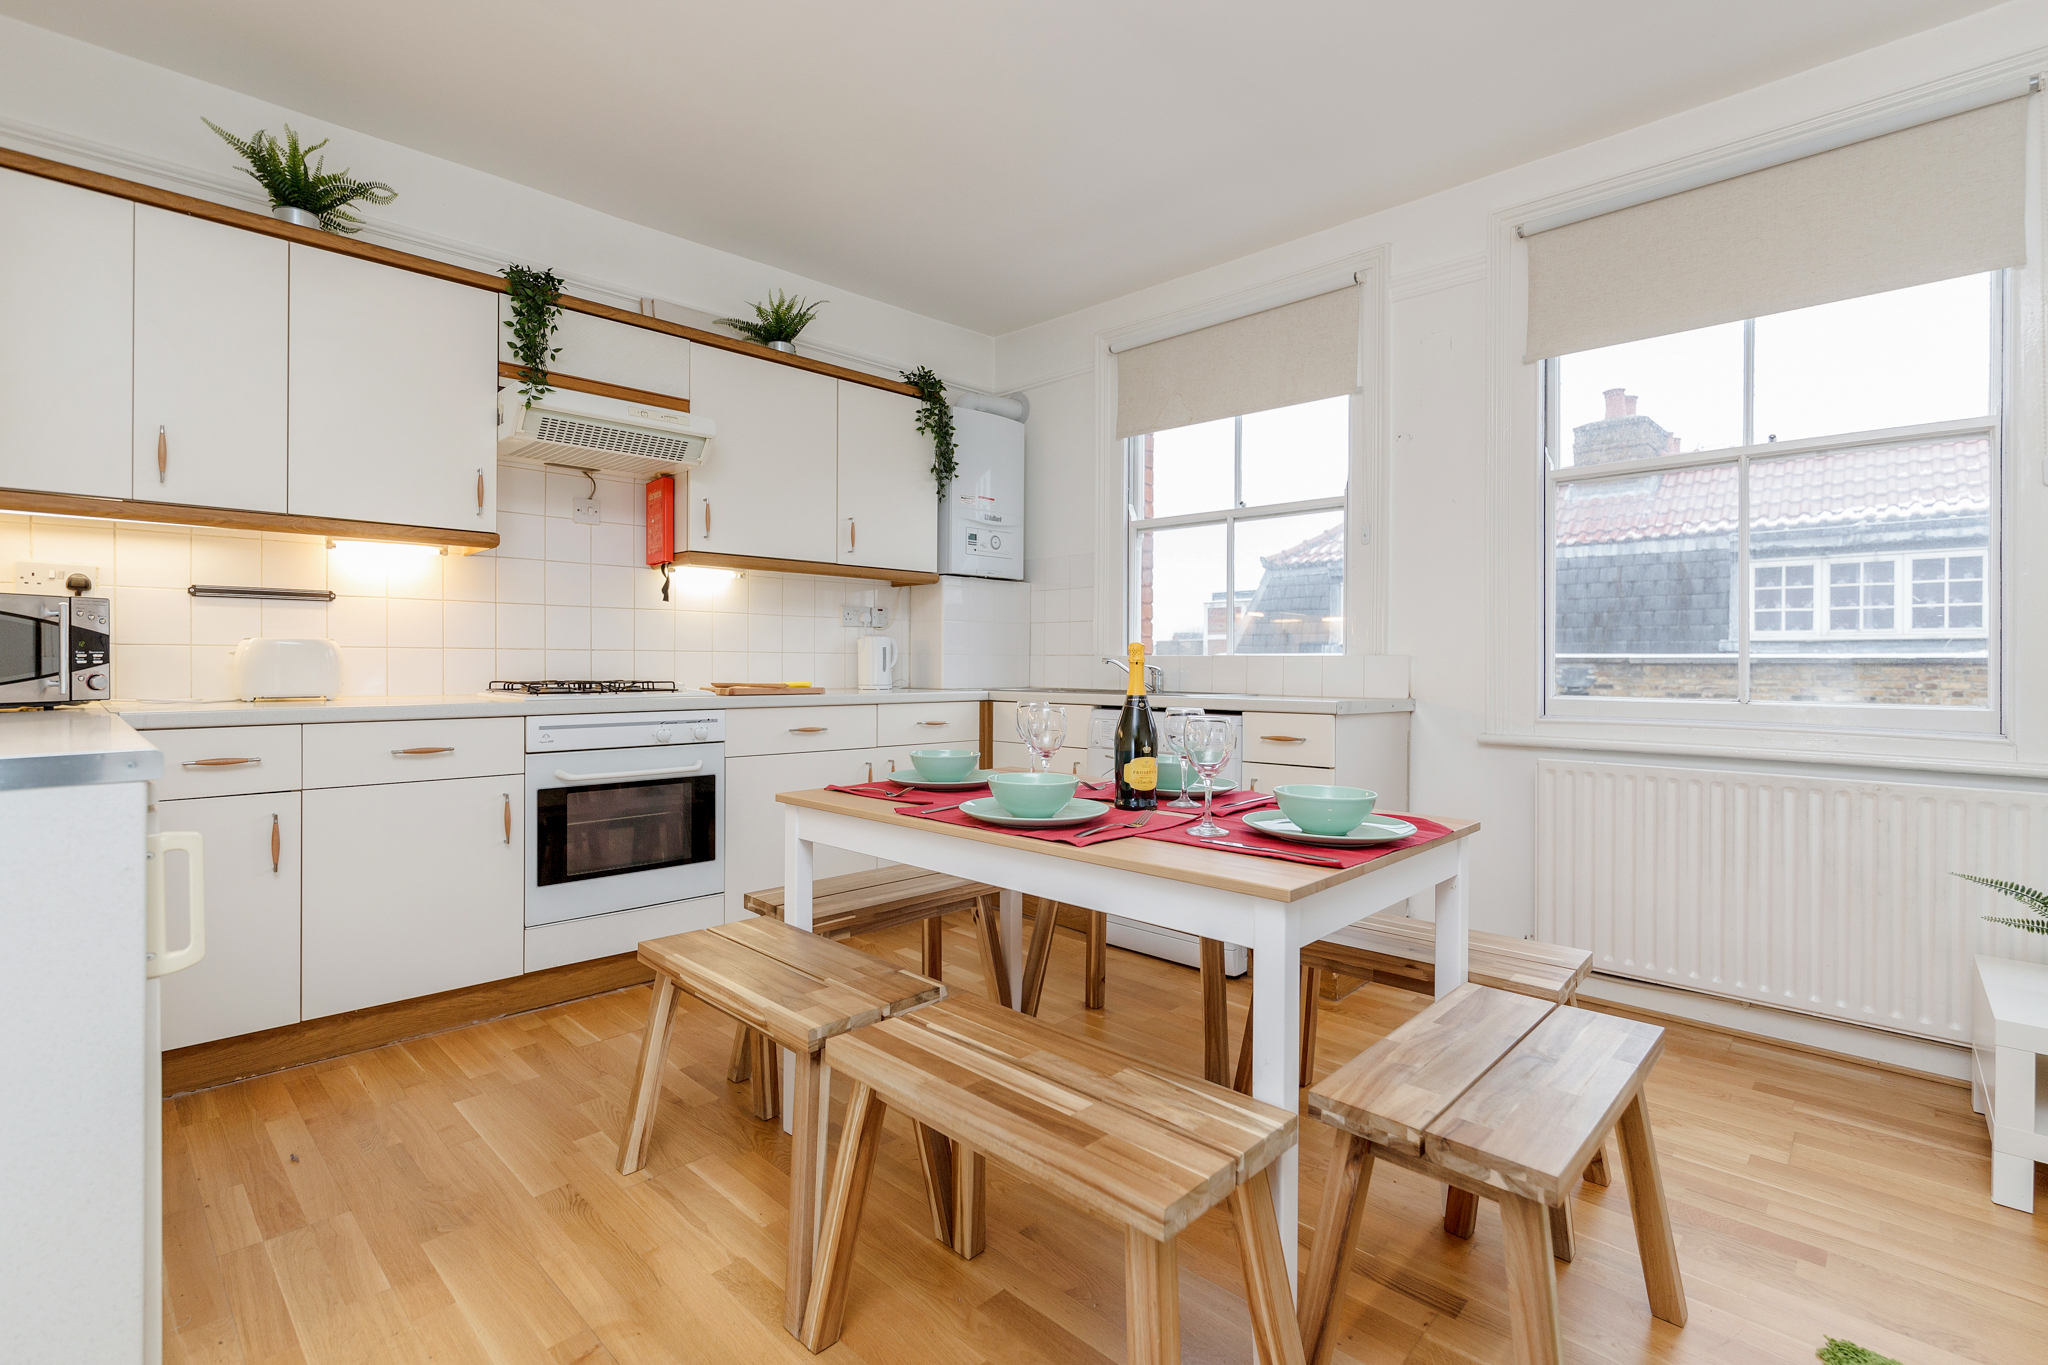 Contemporary East London Style Apartment in the heart of Brick Lane - one Minute from The Truman Brewery  photo 20324100